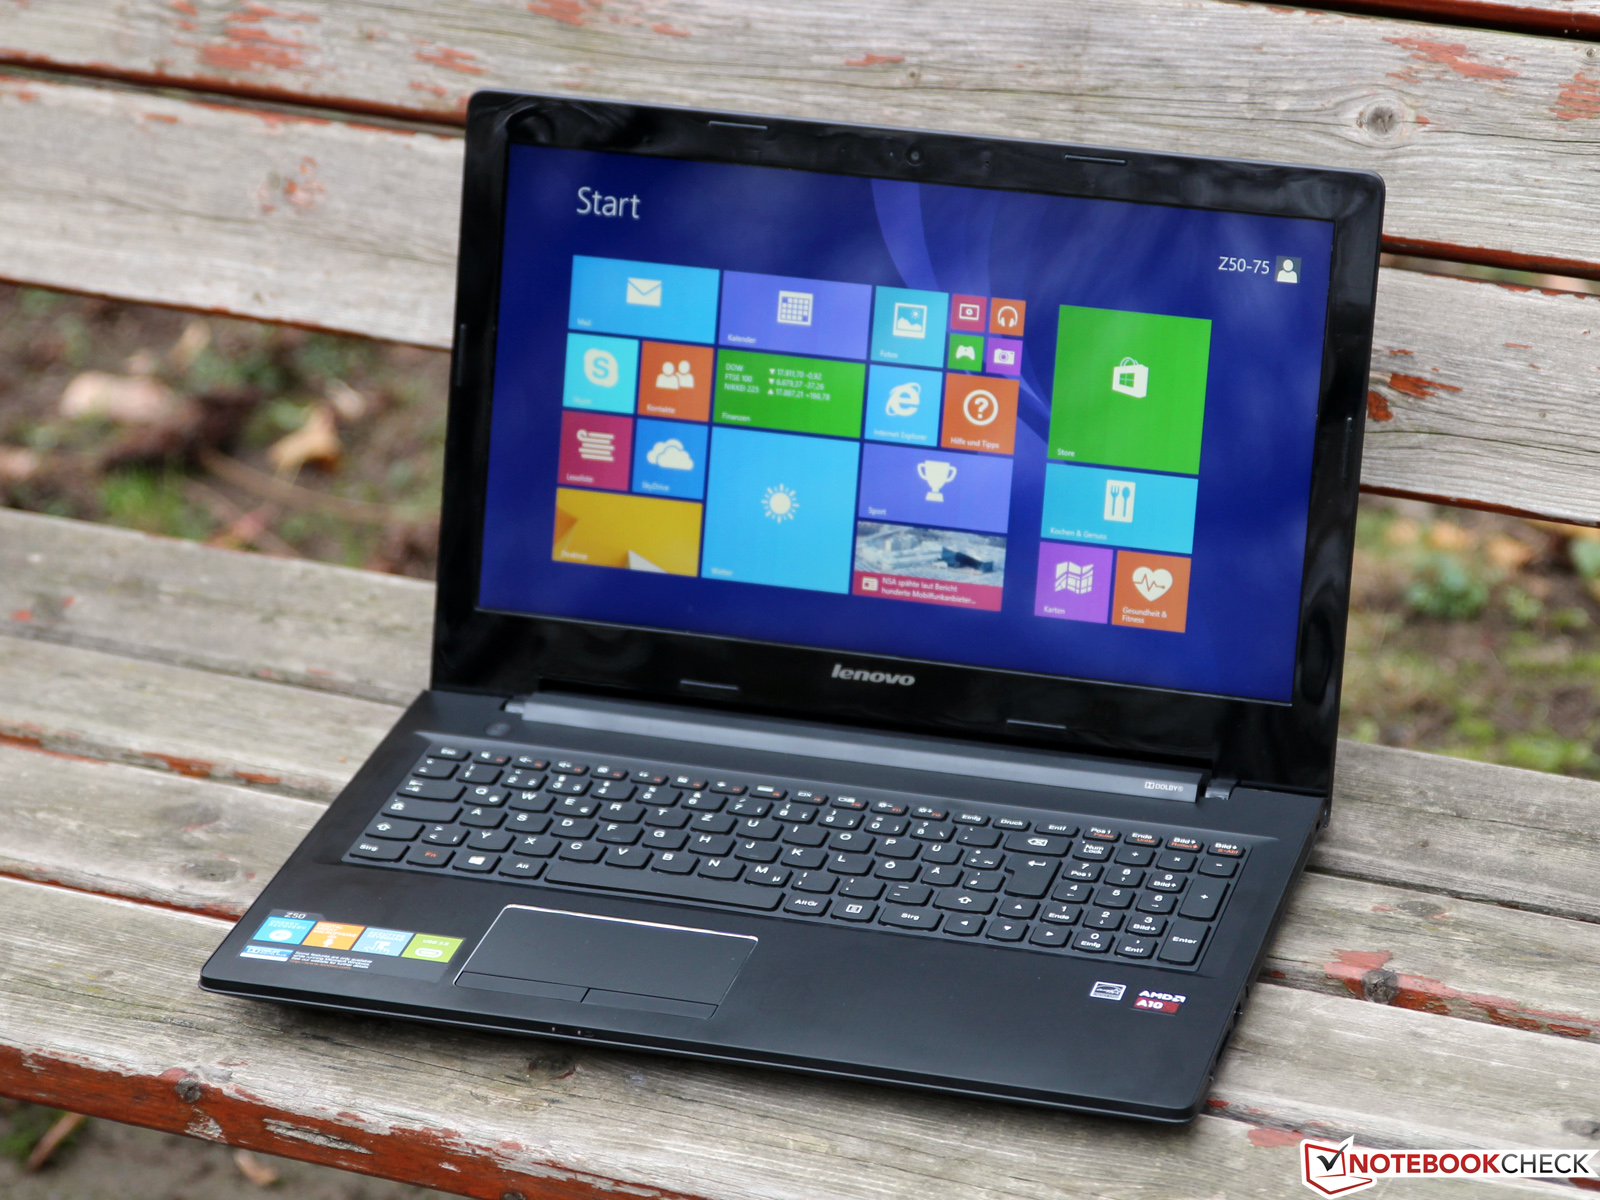 Lenovo IdeaPad Z50 75 Notebook A10 7300 Review Update